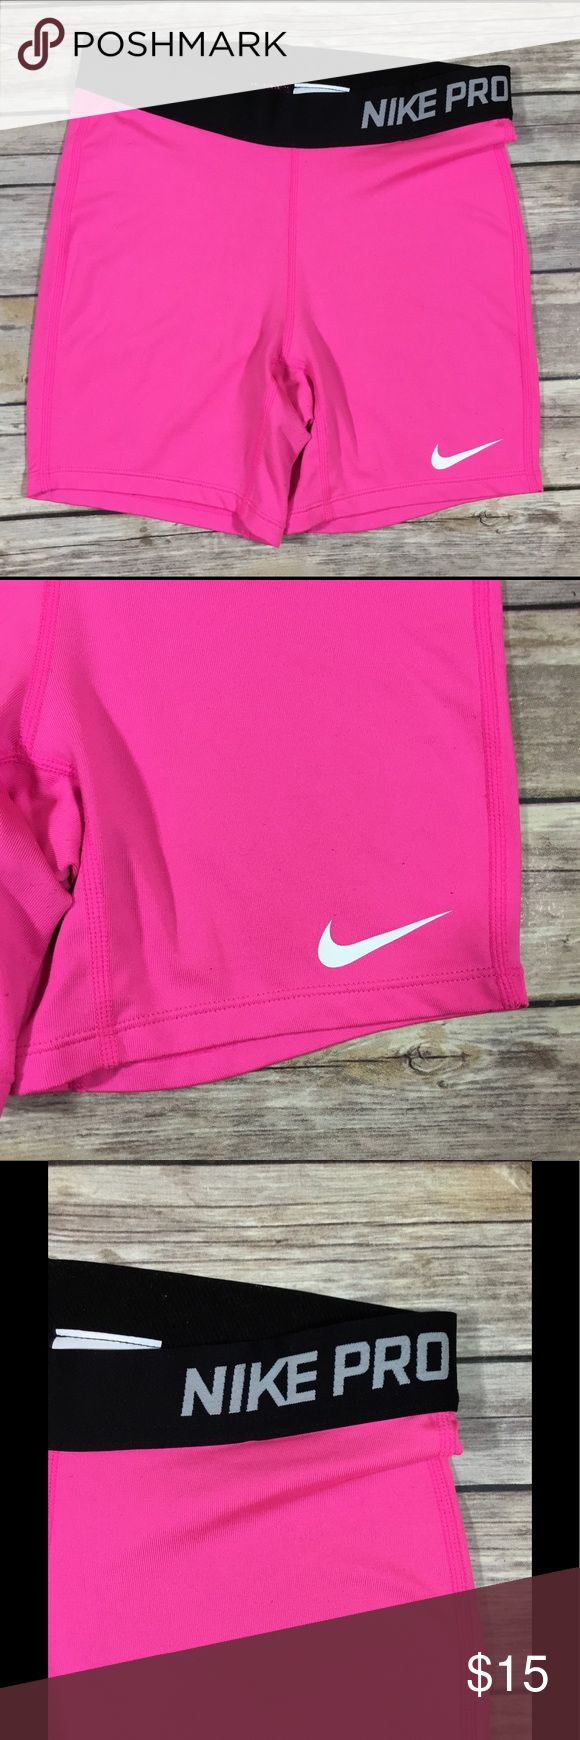 "Nike Pro Girls Dri Fit Pink Compression Shorts 168 Nike Pro Girls Dri Fit Pink Compression Shorts. GUC with minor wear, as pictured. Size XL. 92% Polyester and 8% Spandex.  Waist - 24"" Hips - 26"" Rise - 7.5"" Inseam - 5"" Nike Bottoms Shorts"